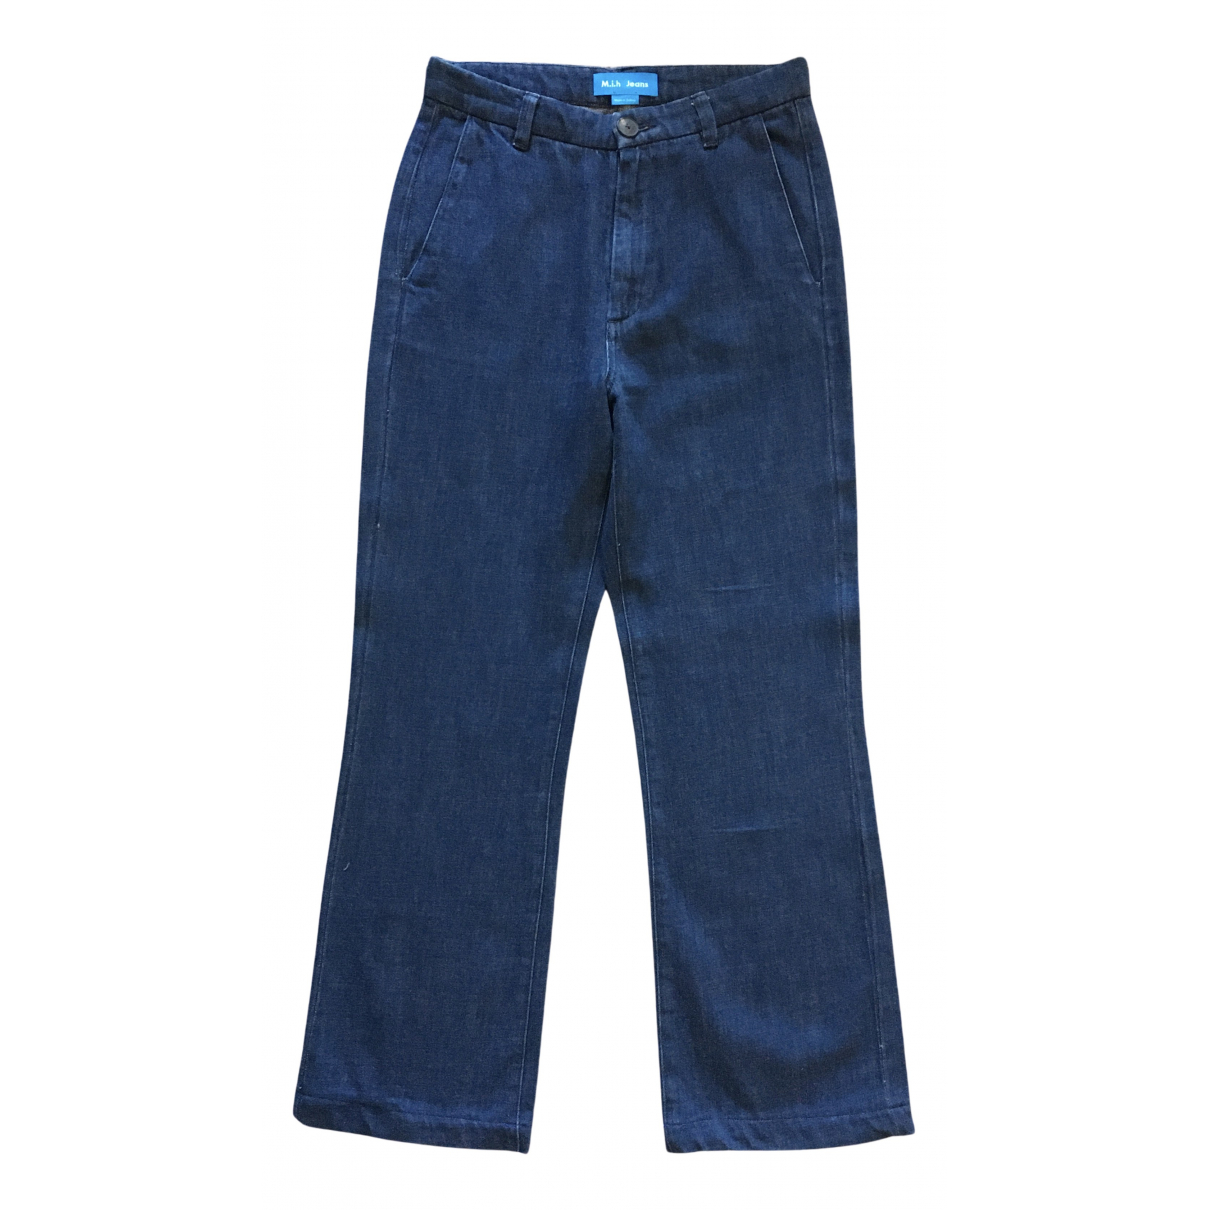 Mih Jeans N Blue Cotton Jeans for Women 28 US